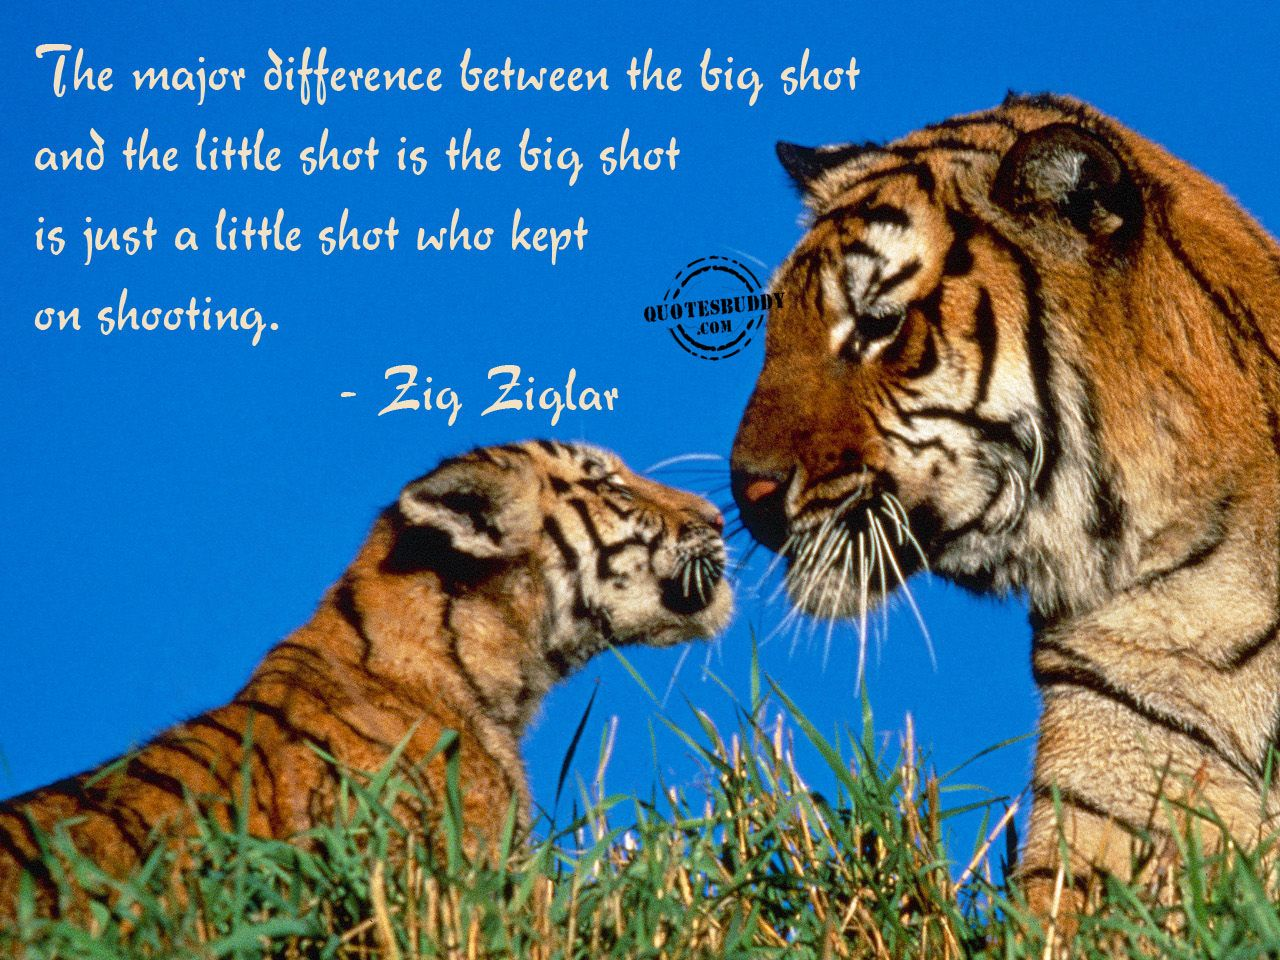 difference between a job and a career quote urlhttp - Job Vs Career The Difference Between A Job And A Career